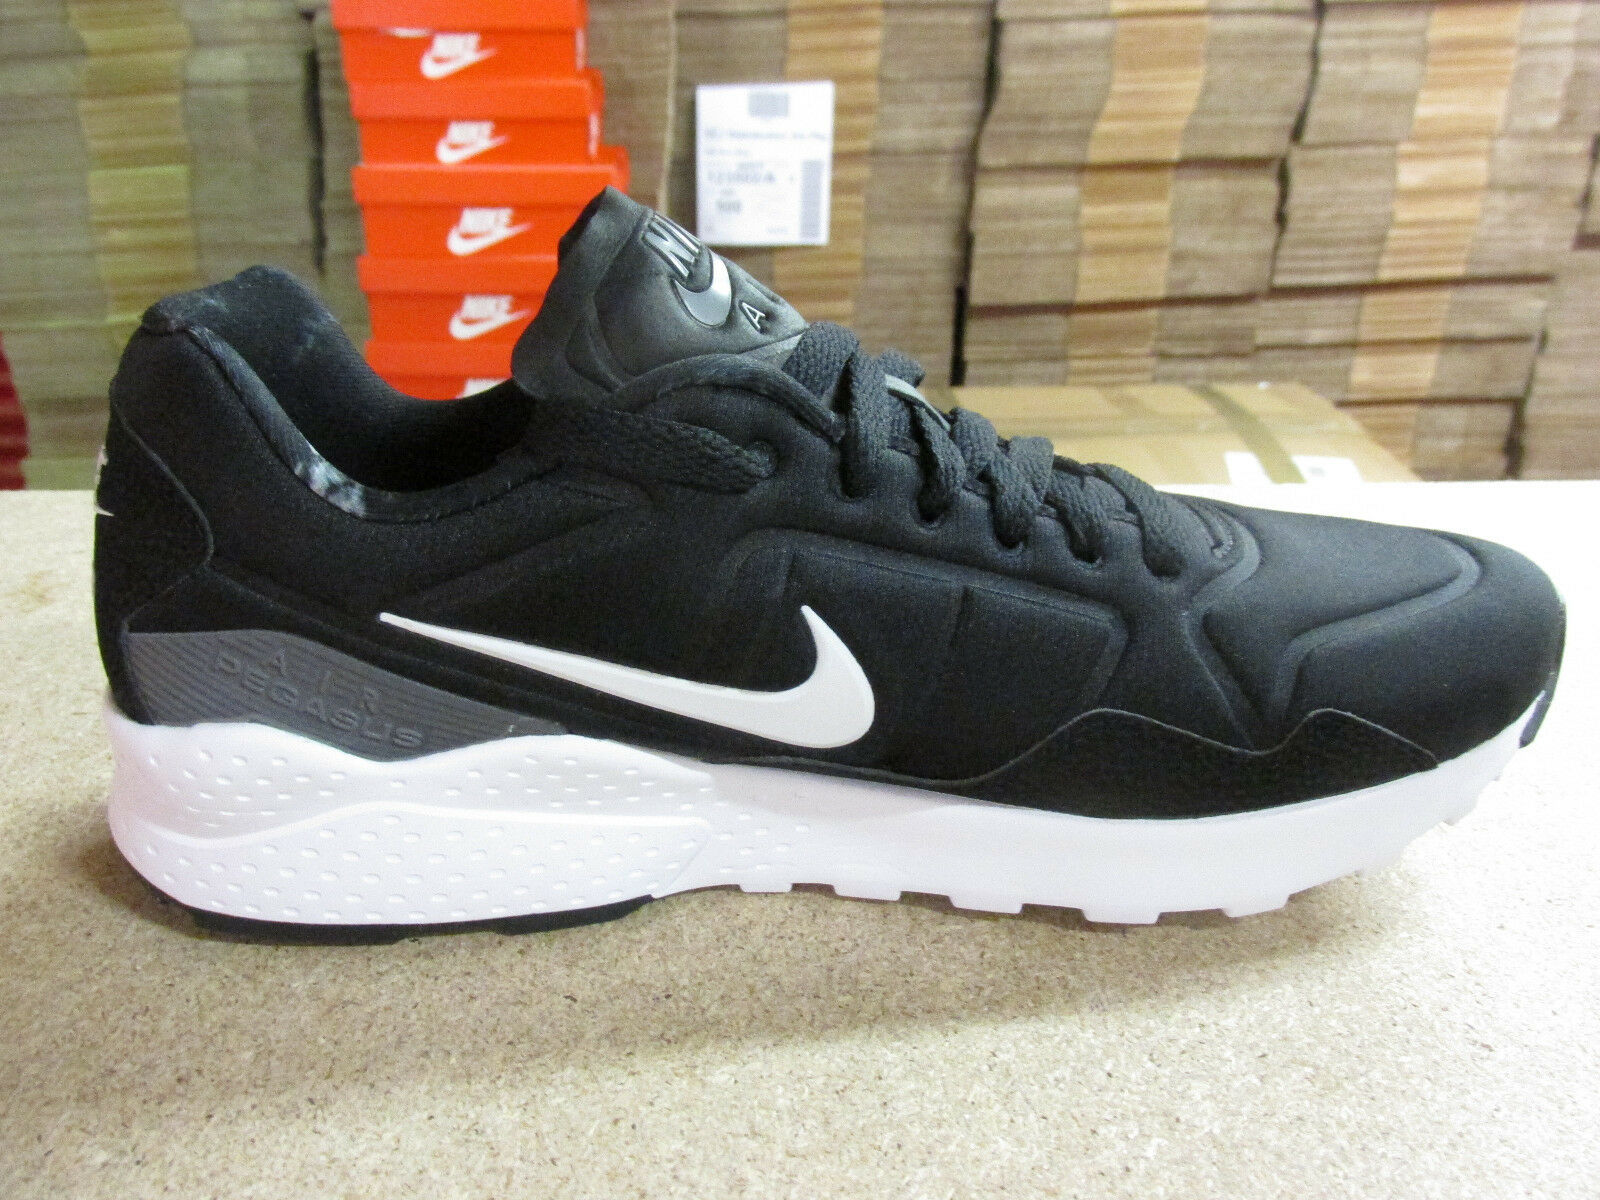 Nike Air Zoom Pegasus 92  001 Uomo Running Trainers 844652 001  Sneakers Schuhes b335dc